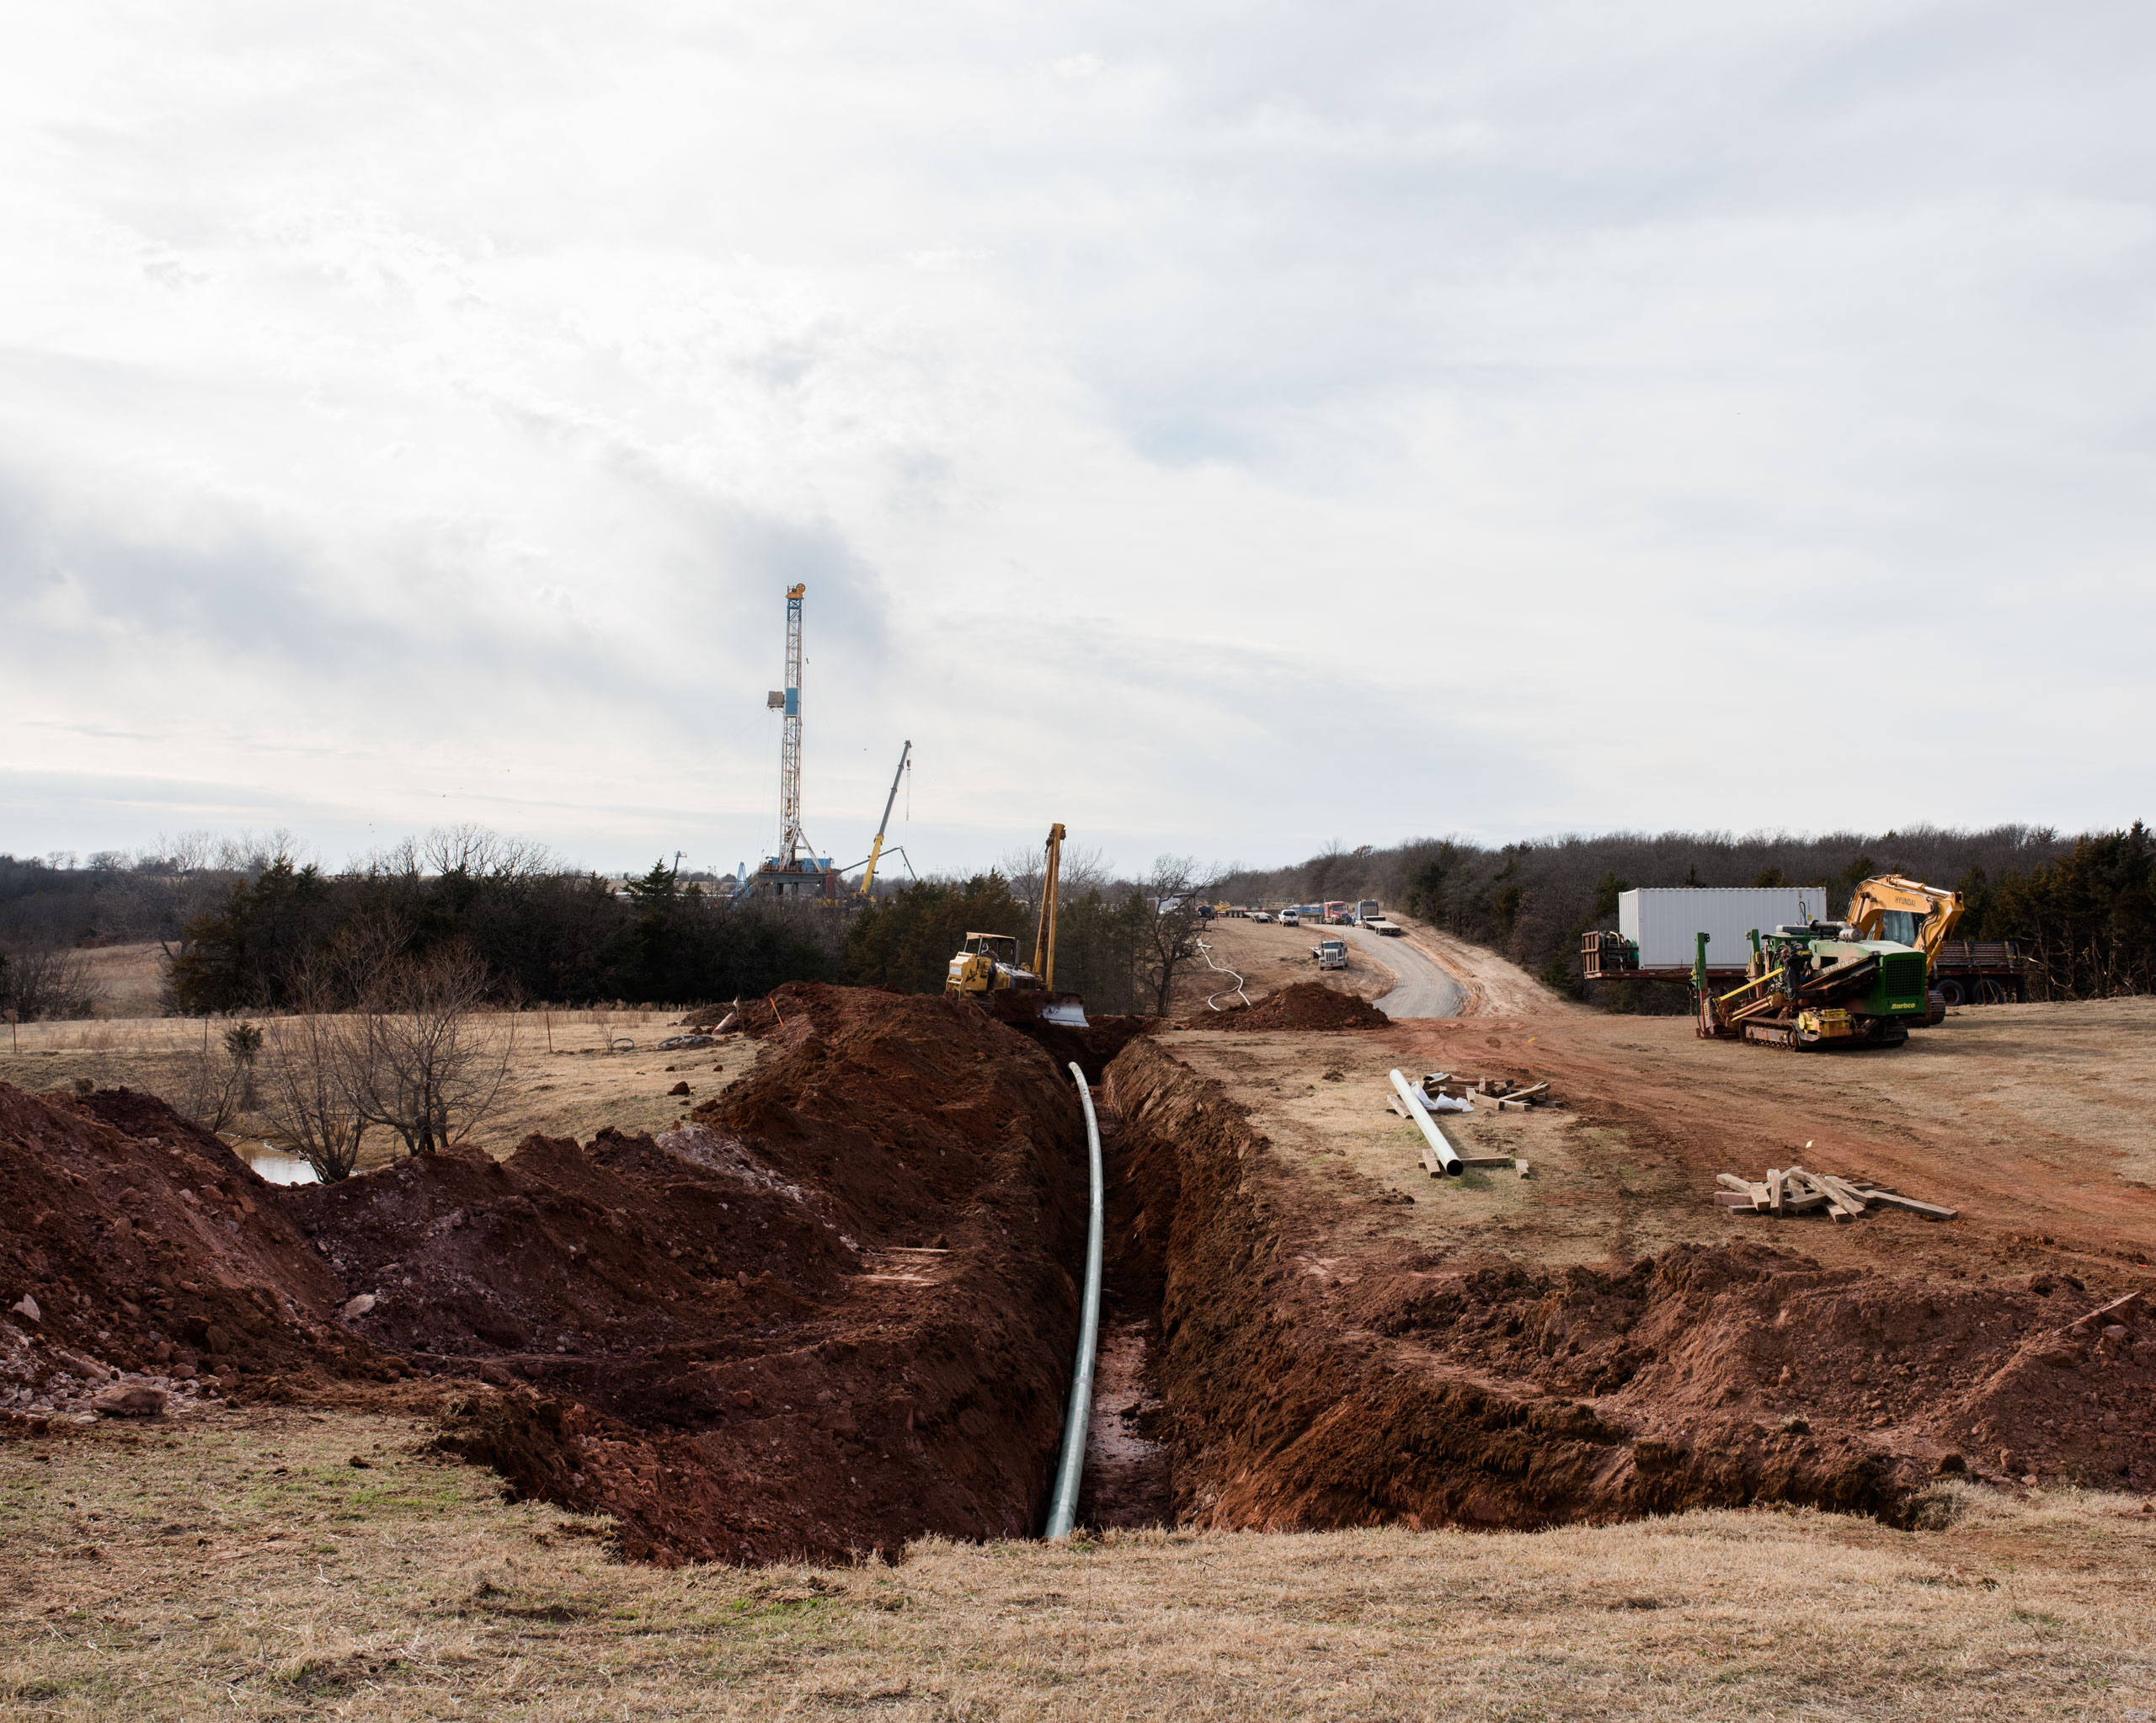 Construction crews work on the installation of an underground oil pipeline, Coyle, OK